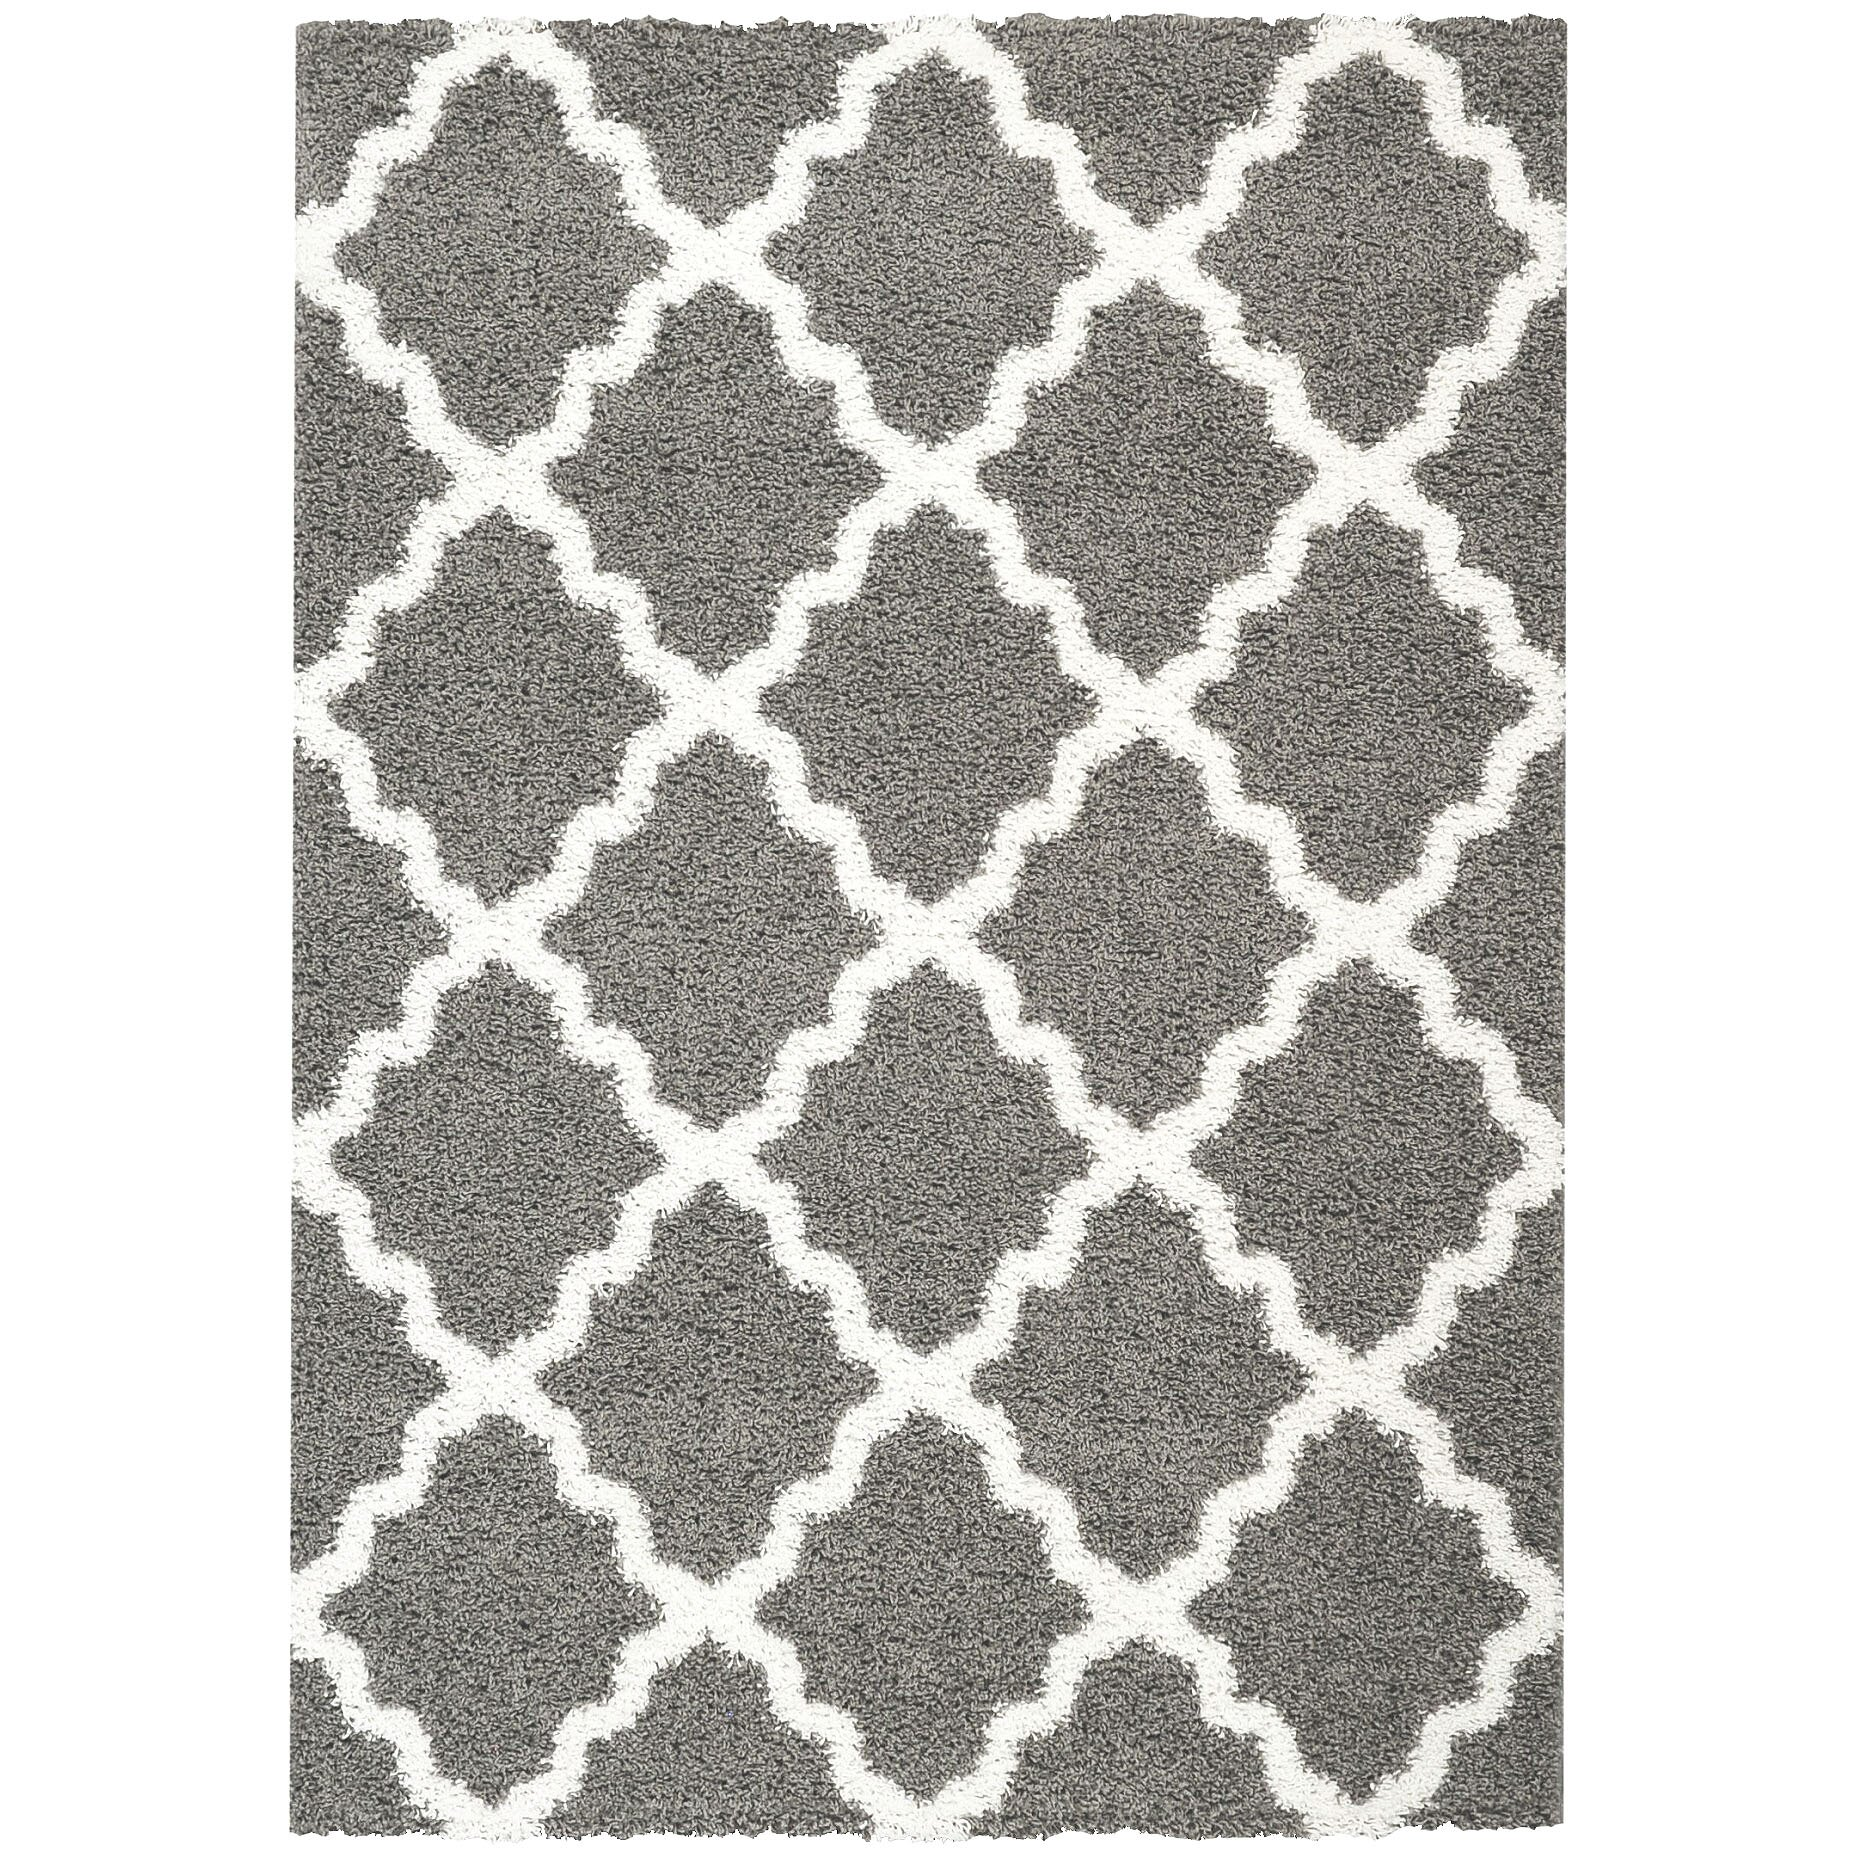 Rugnur Bella Maxy Home Moroccan Trellis Contemporary Gray/White Shag Area  Rug